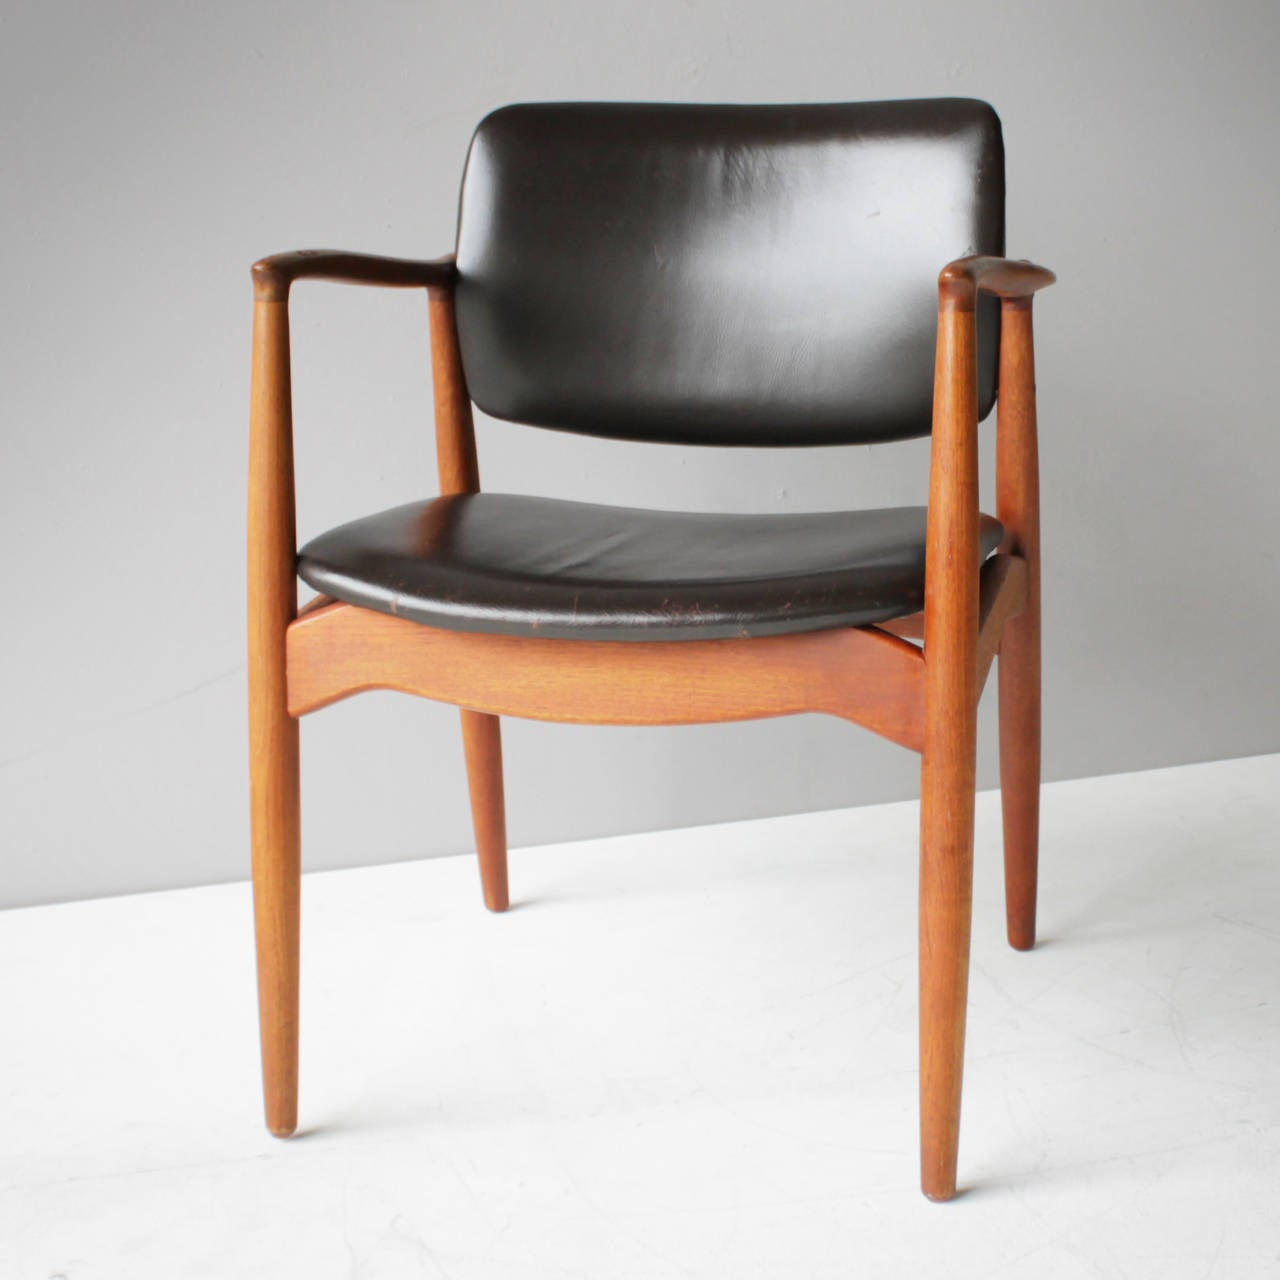 erik buck chairs victorian style chair covers teak and leather by eric for Ø mobler denmark